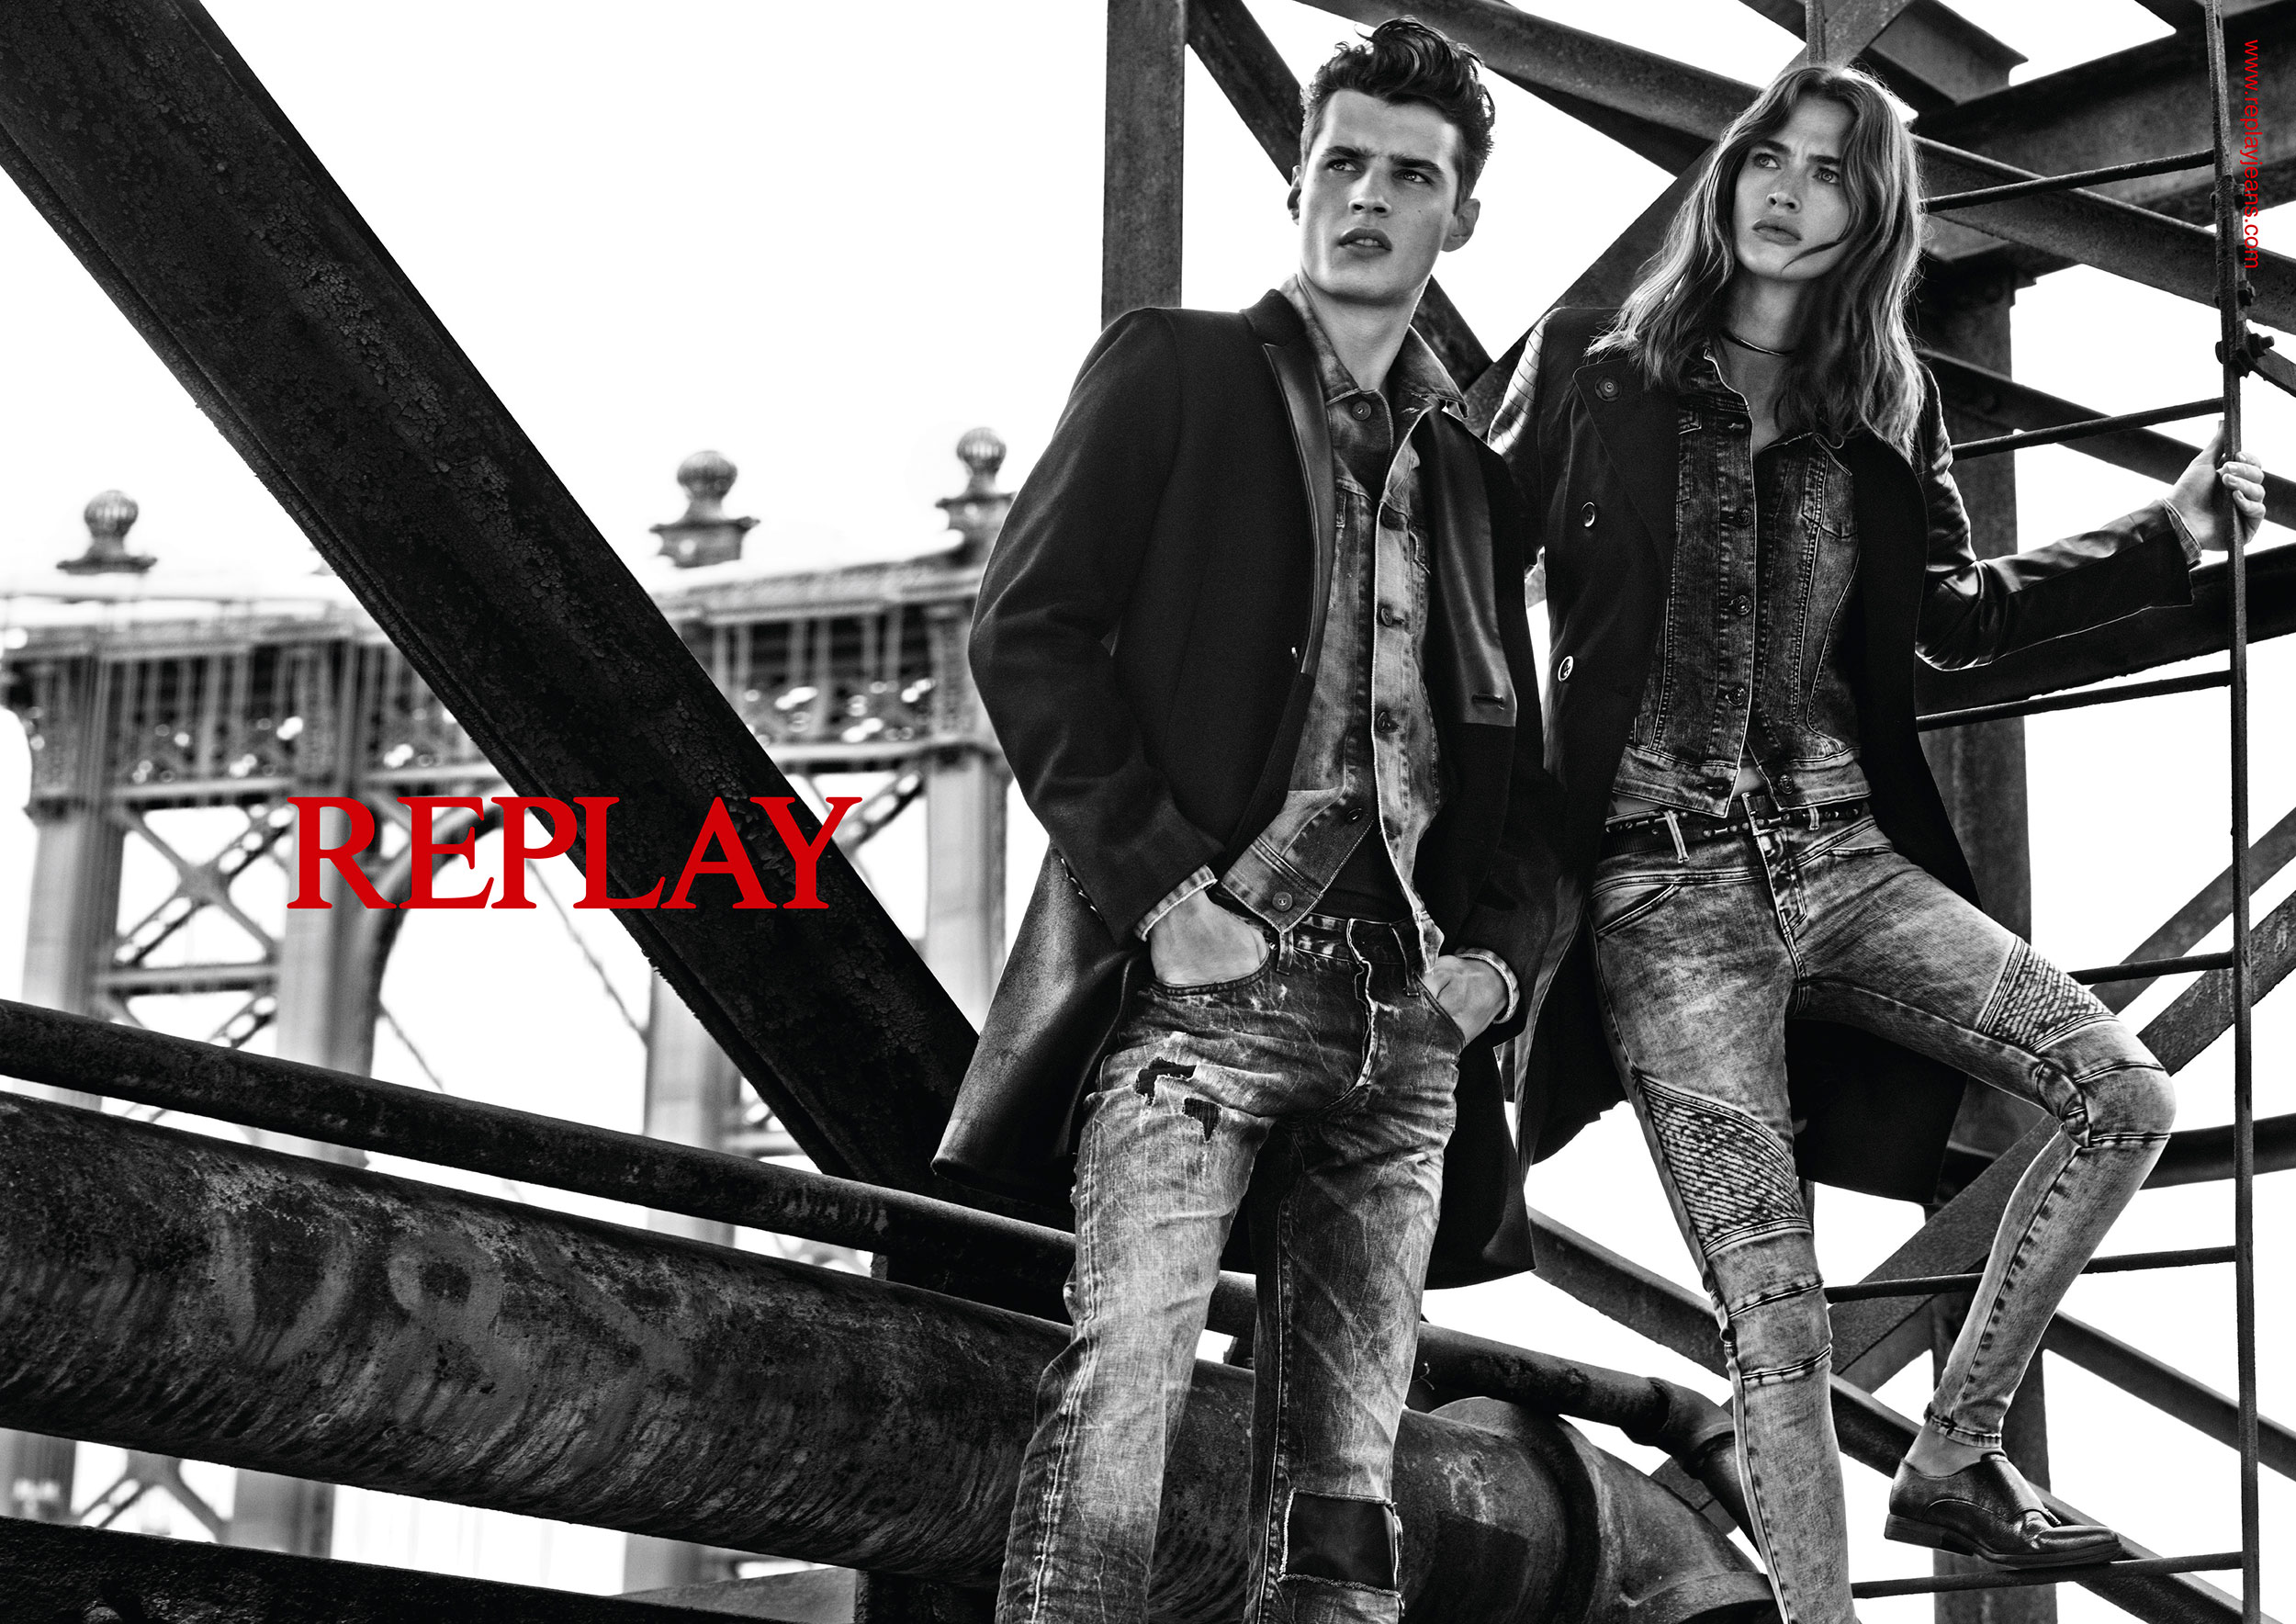 Replay | Fall 2015 Campaign